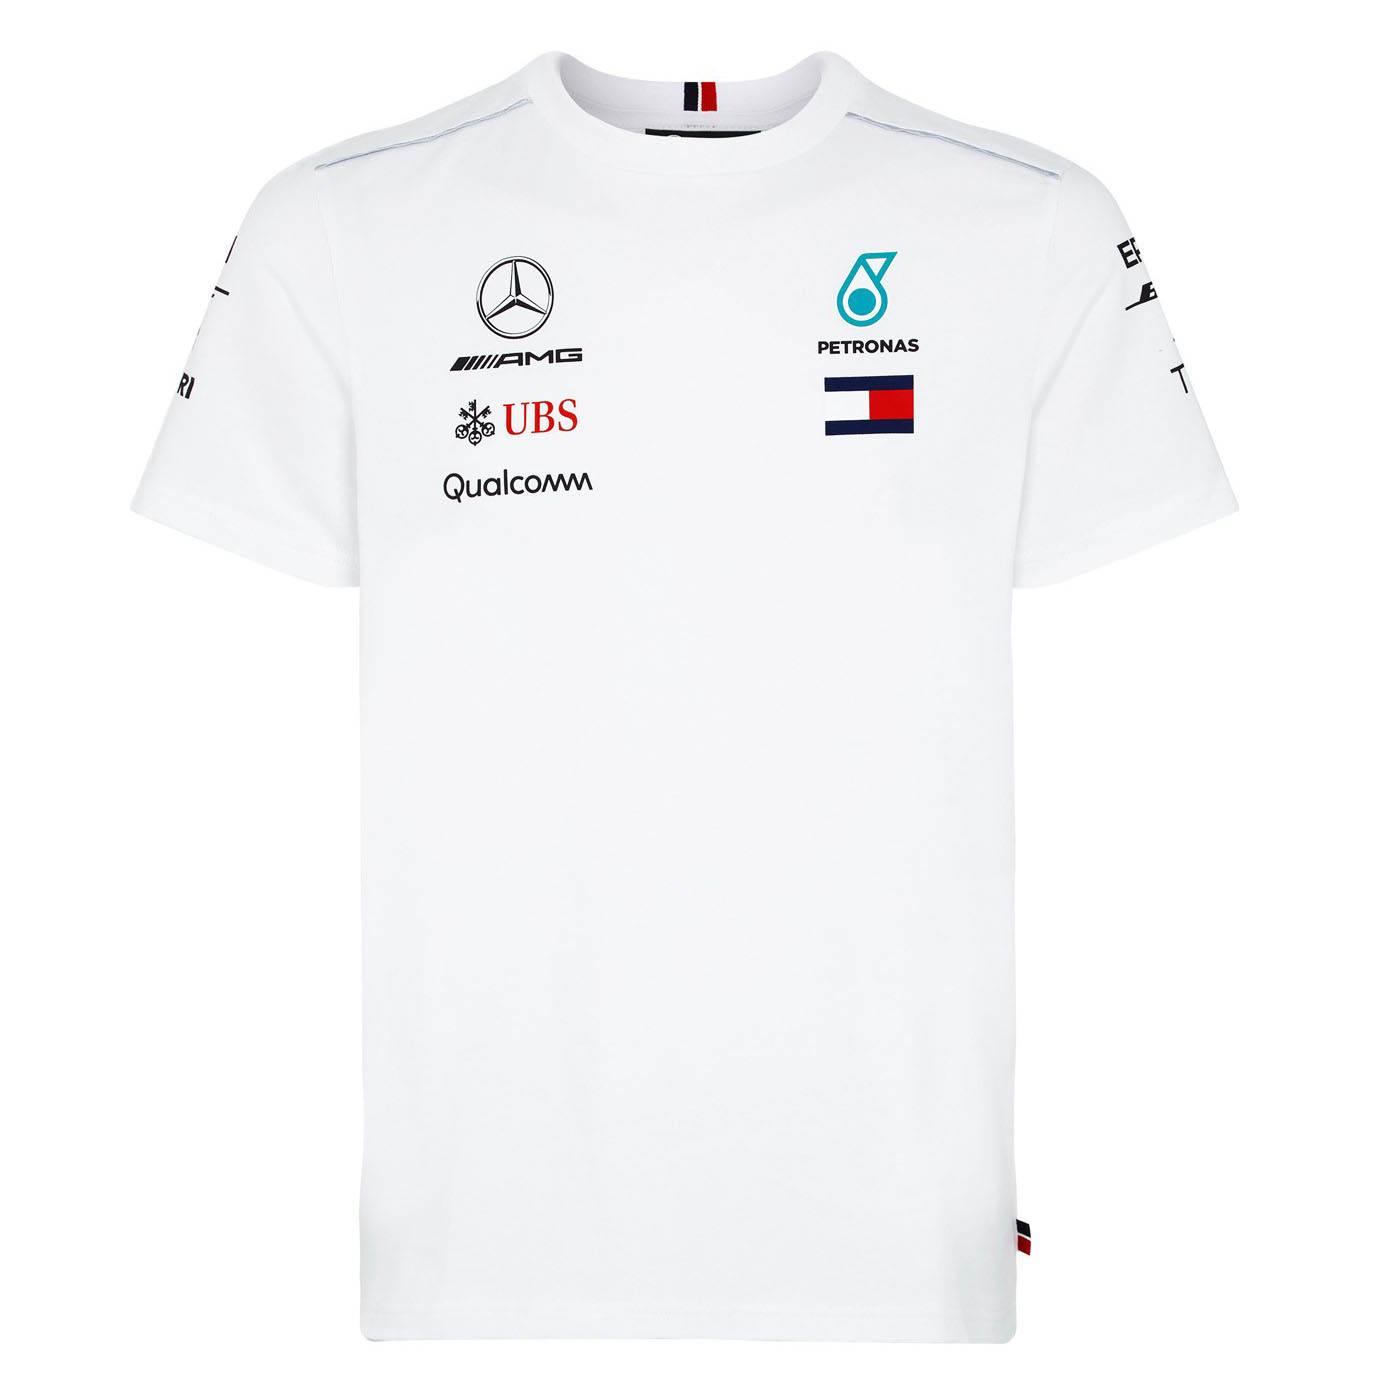 2018 Mercedes-AMG F1 Lewis Hamilton 2018 Race Winner T-Shirt by Tommy Hilfiger